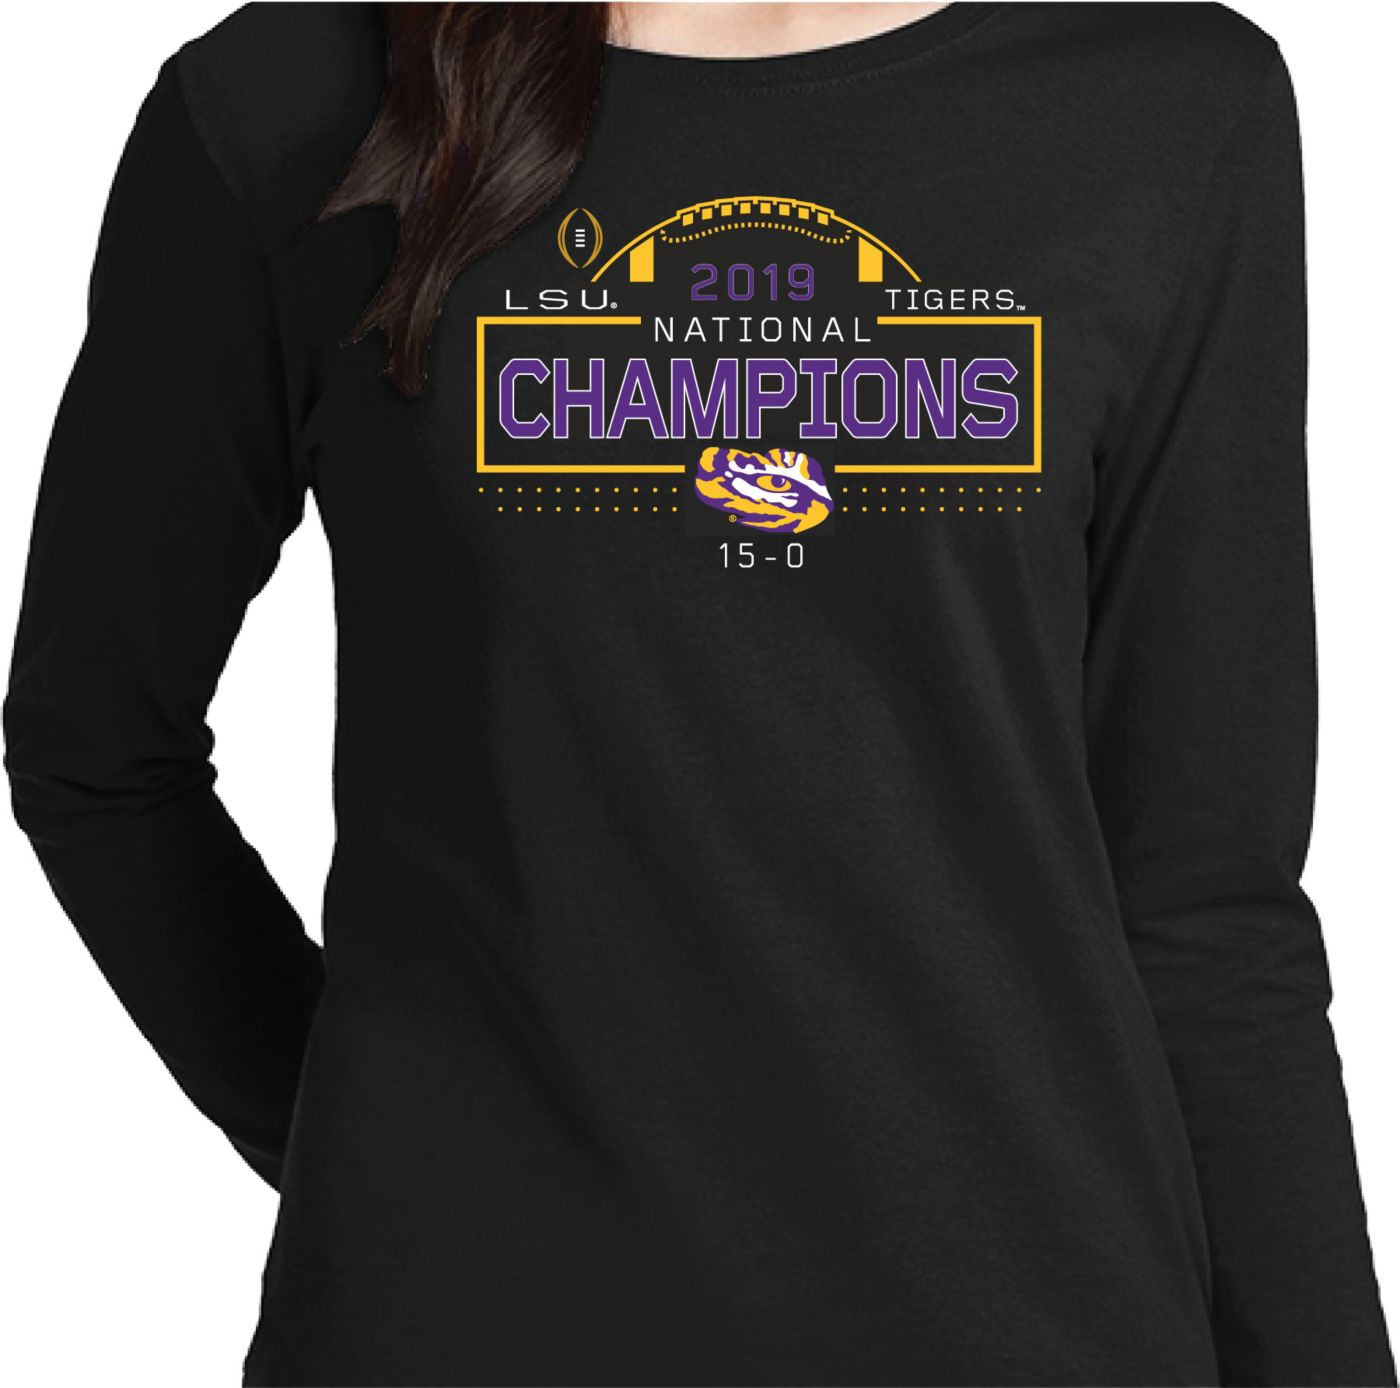 The Victory Women's 2019 National Champions LSU Tigers Long Sleeve T-Shirt